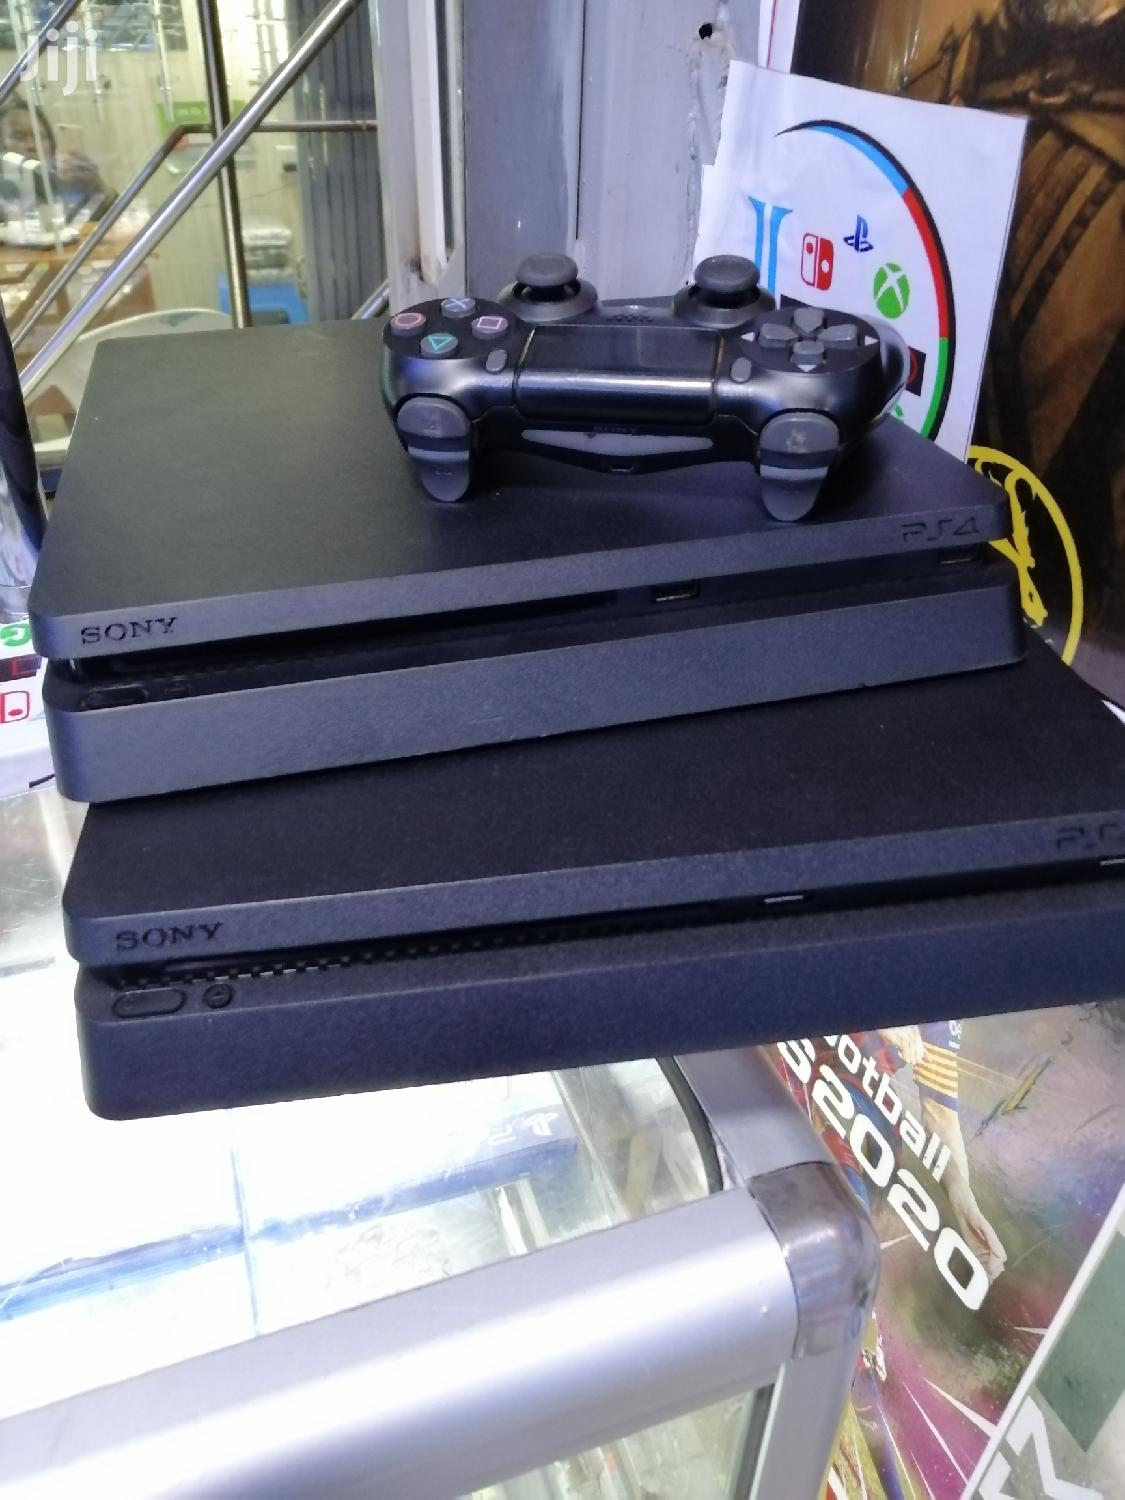 Archive: Playstation 4 Console Has Been Slightly Used